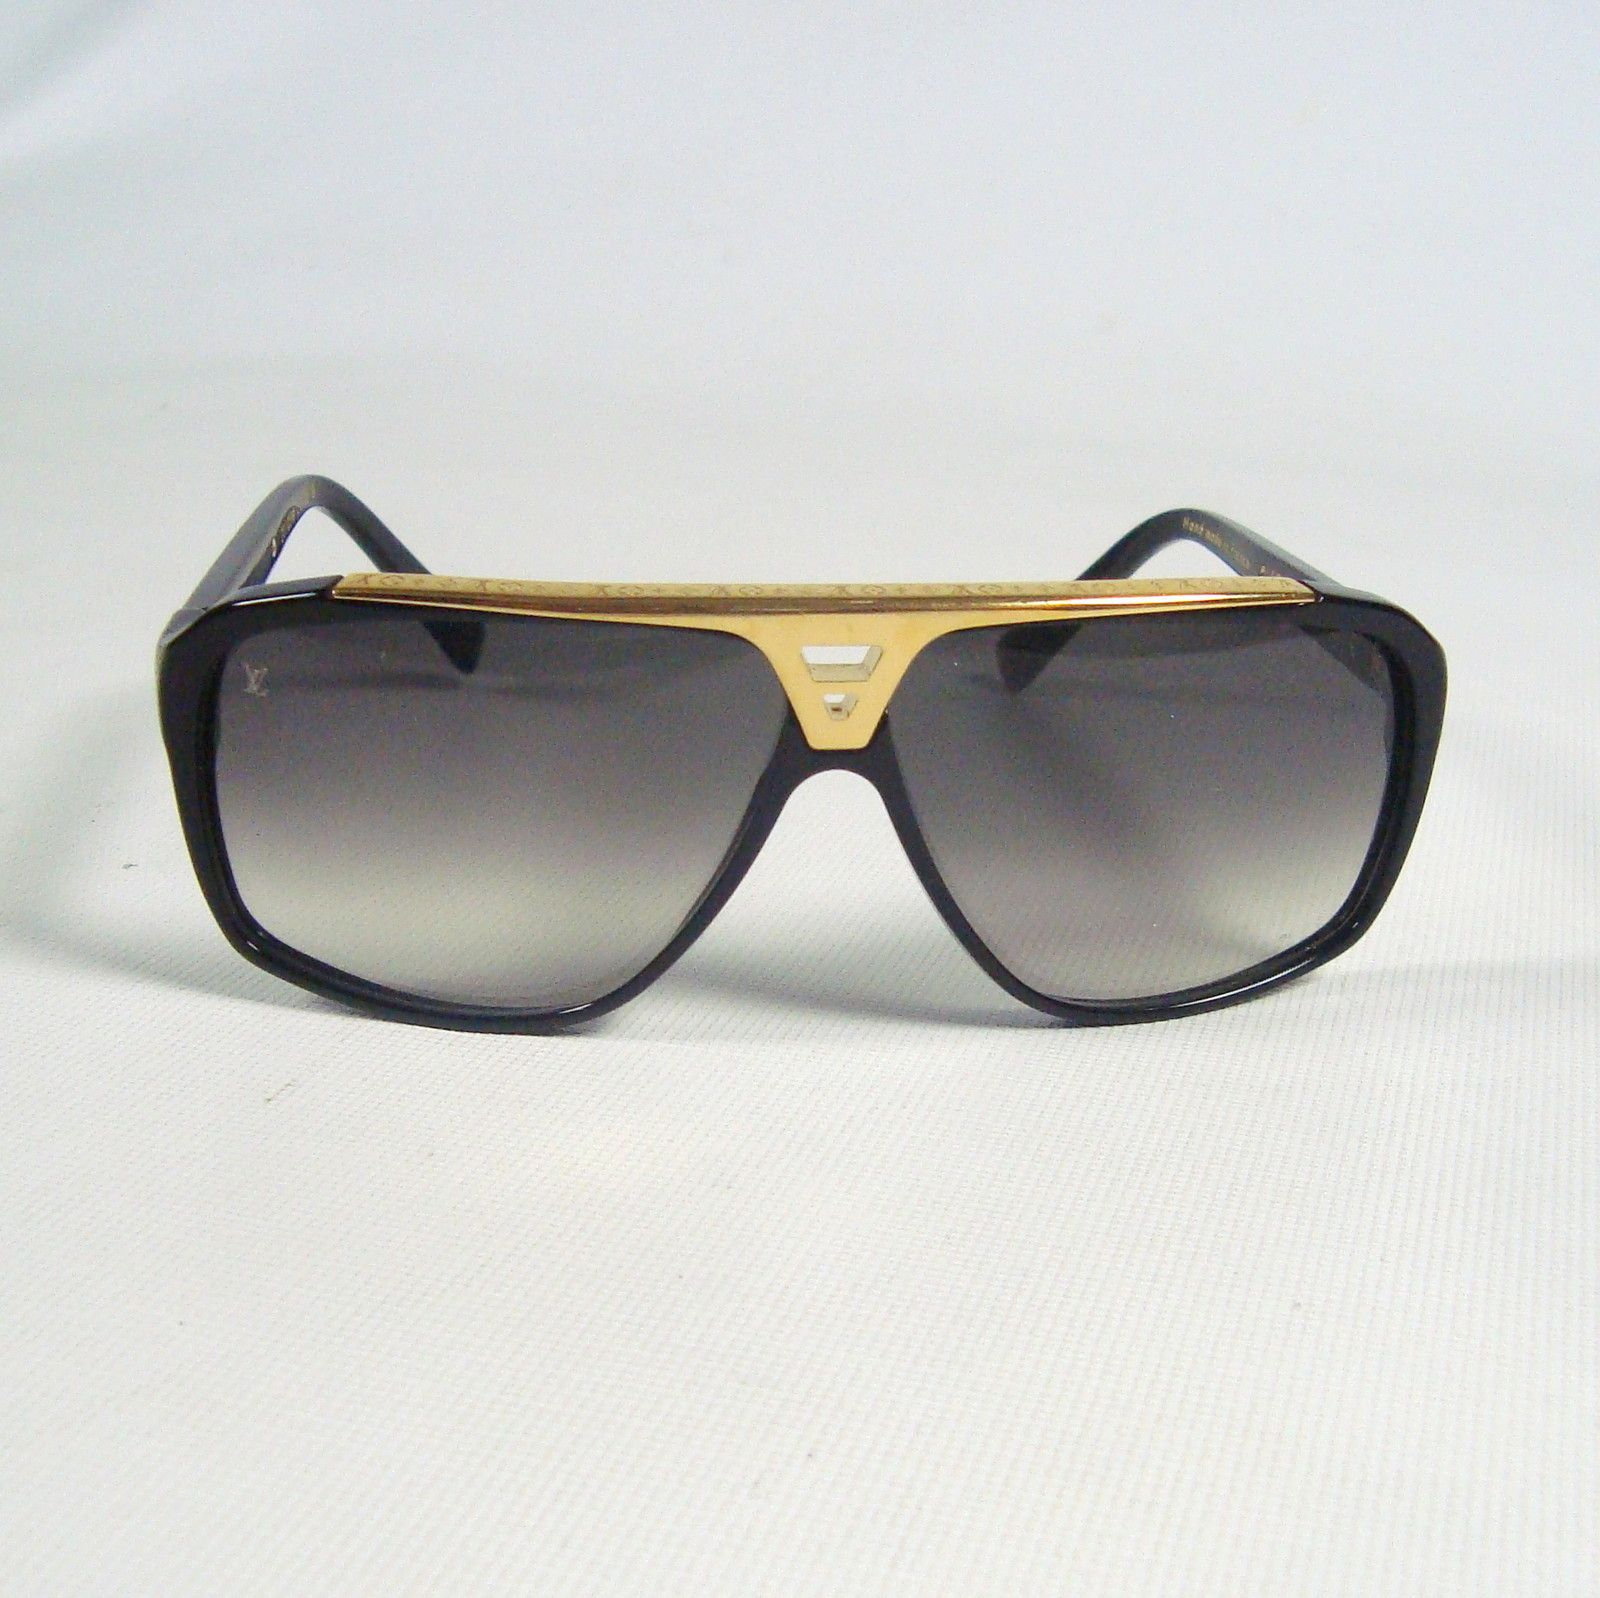 d40d92c297 Louis Vuitton Sunglasses (Men s Pre-owned Black   Gold Aviator Sun Glasses